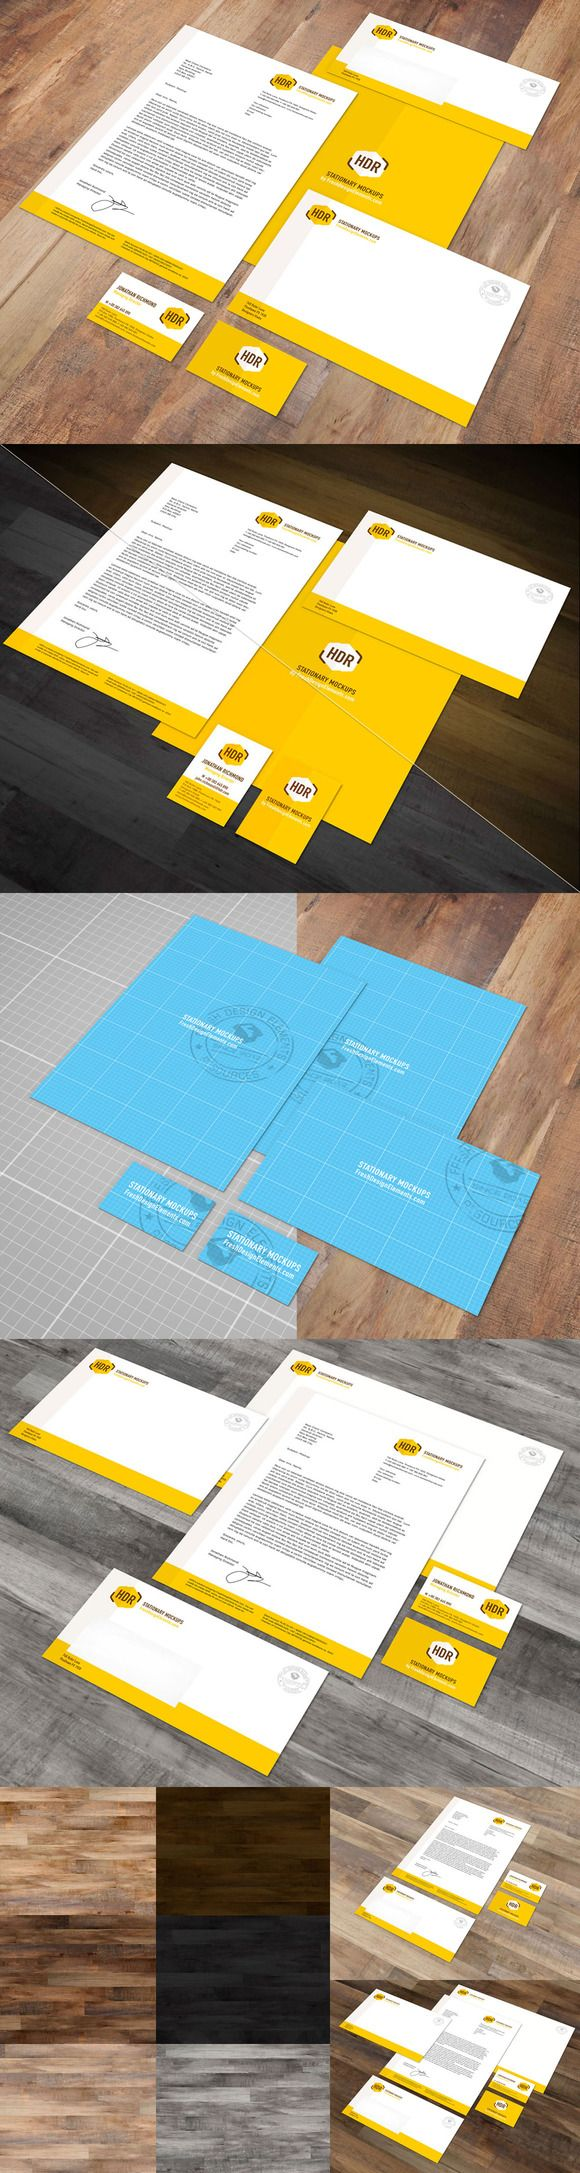 Euro Stationary Mockup Vol. 1 by Fresh Design Elements on Creative Market